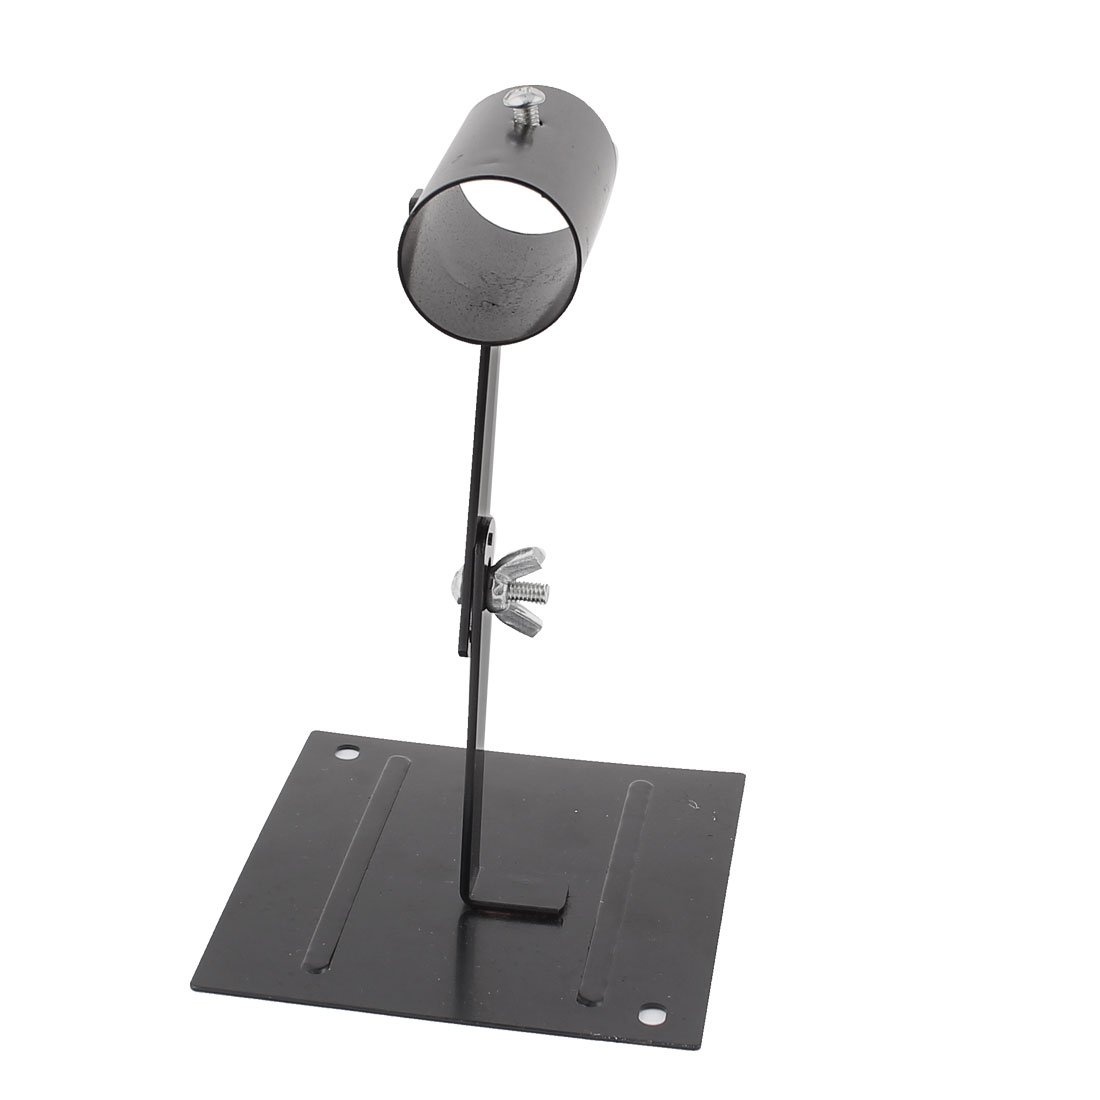 "Black Metal 4.5"" x 3.8"" Rectangle Benchtop Base Adjustable Stand Holder for Soldering Iron"